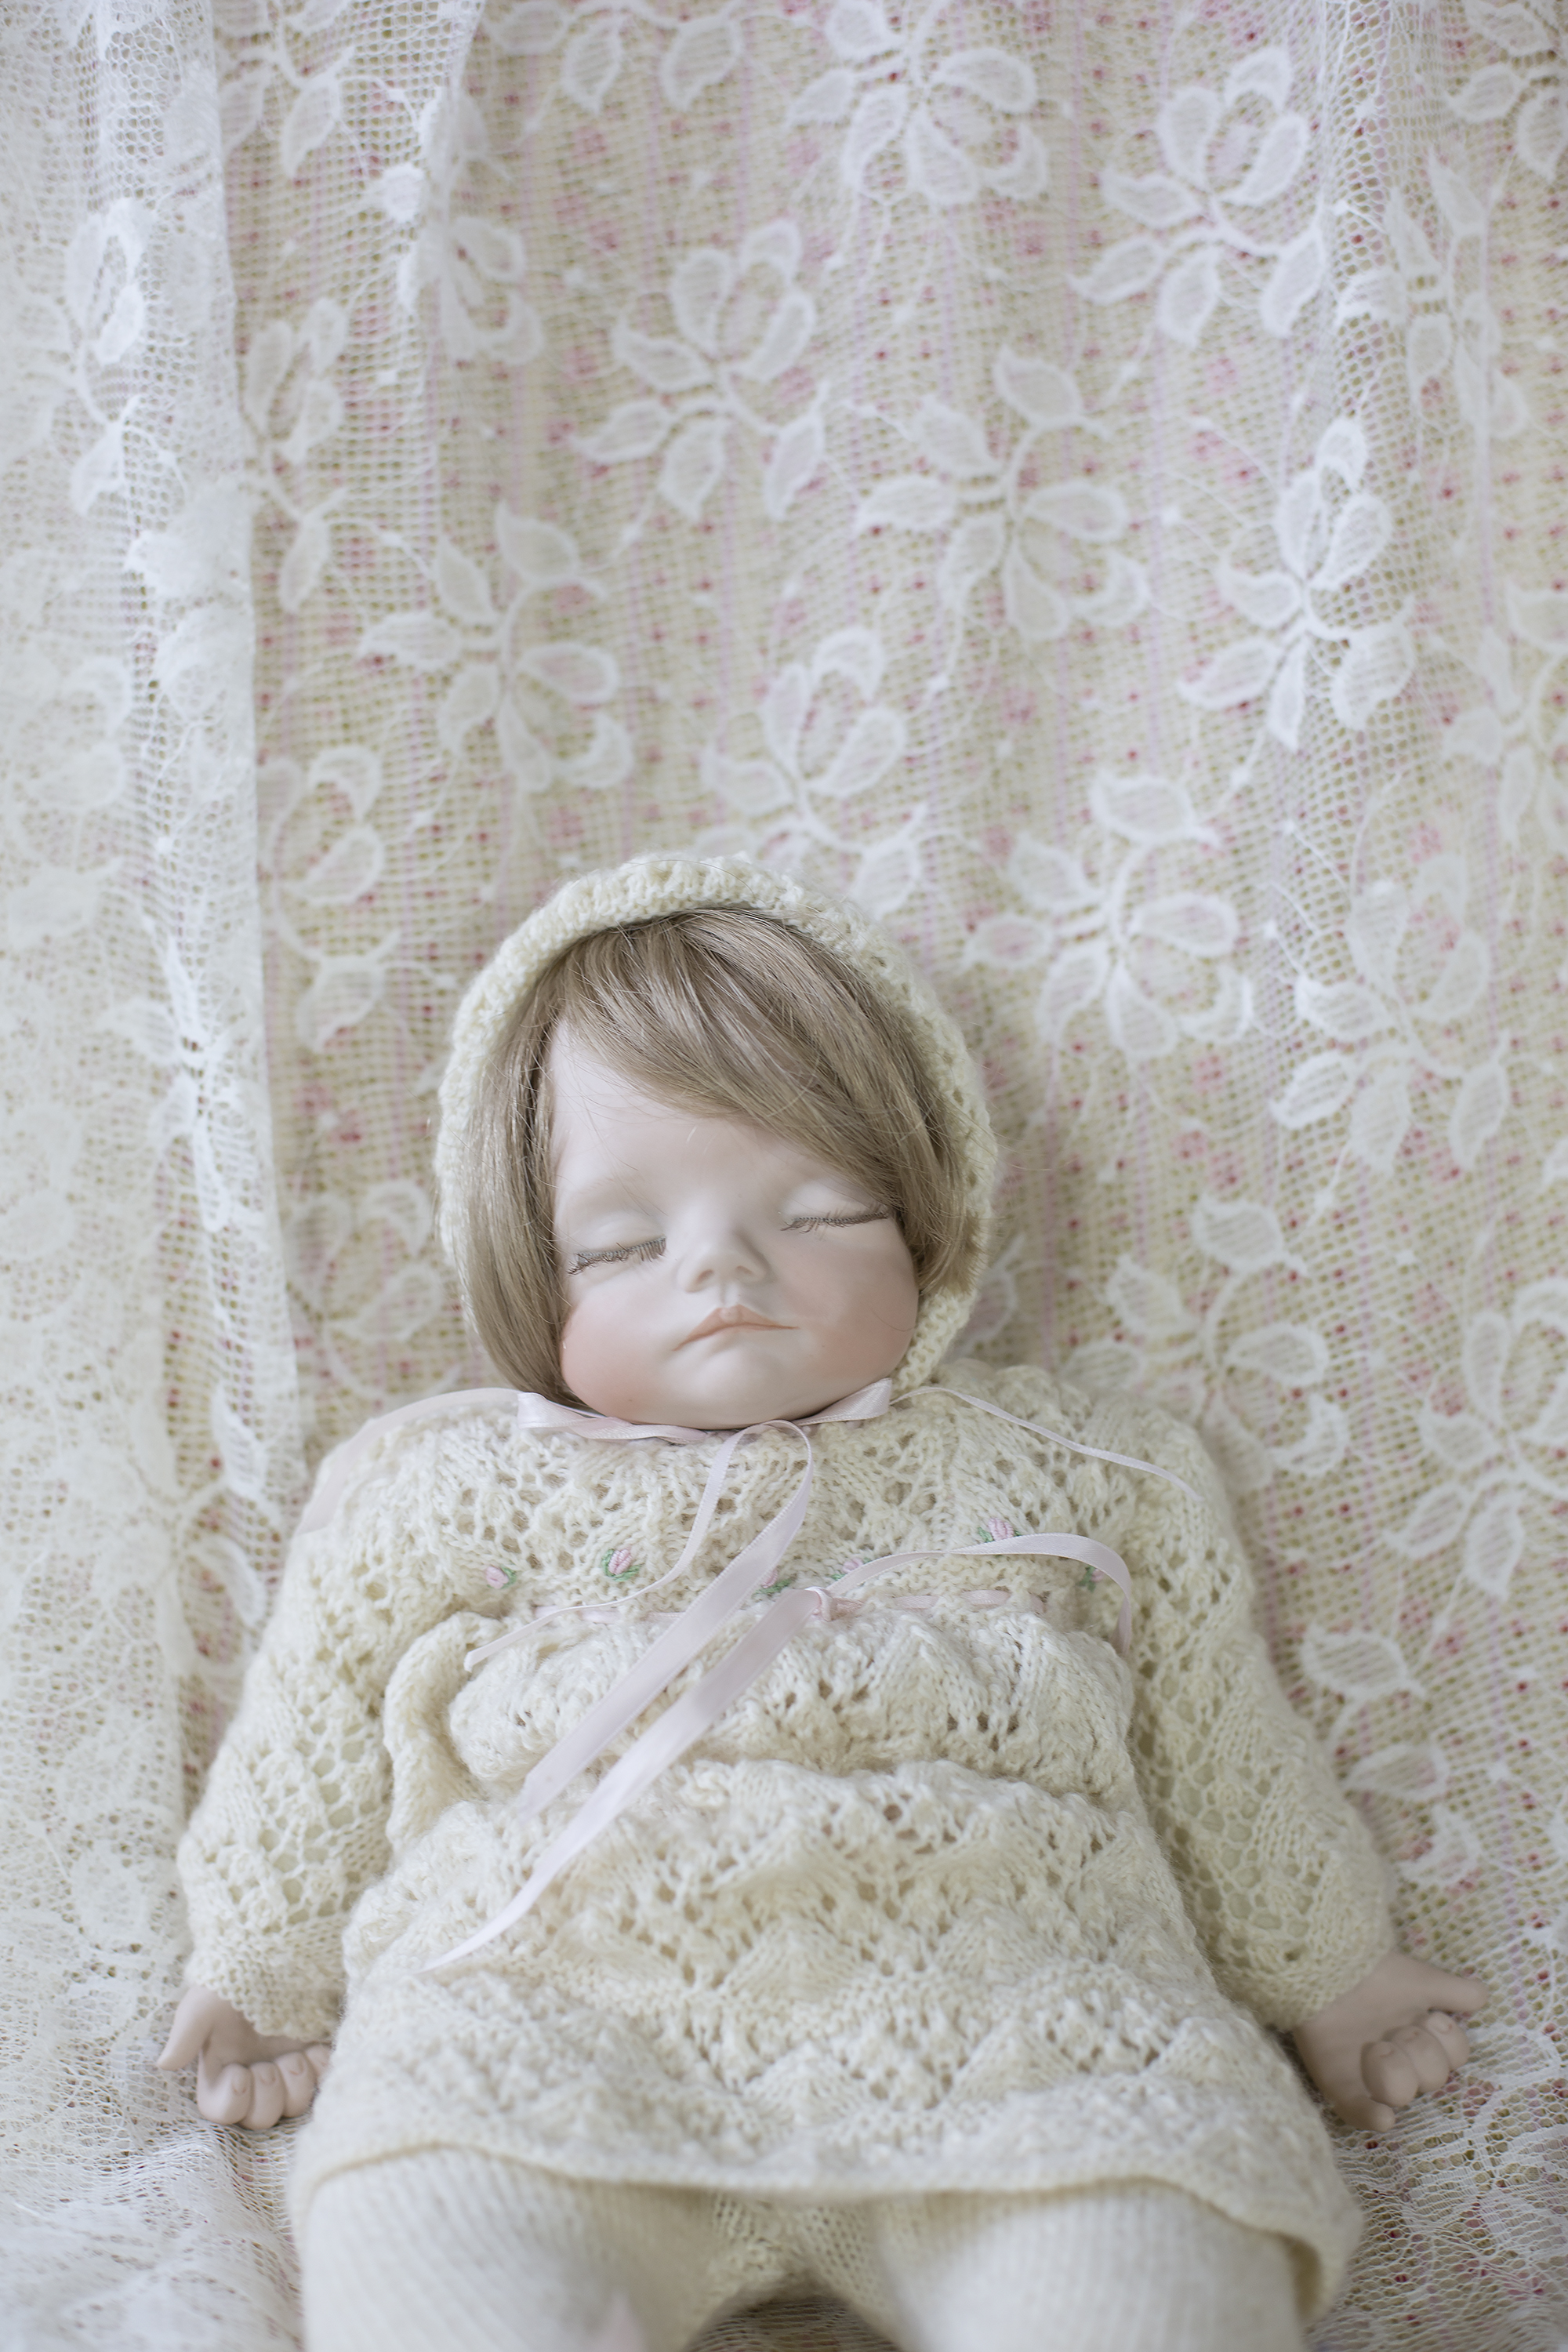 """Porcelain doll made by Judith in 1992 called """"My Princess"""" it is a mould by Joyce Wolfe filled with glass beads so it can be moulded into your body."""